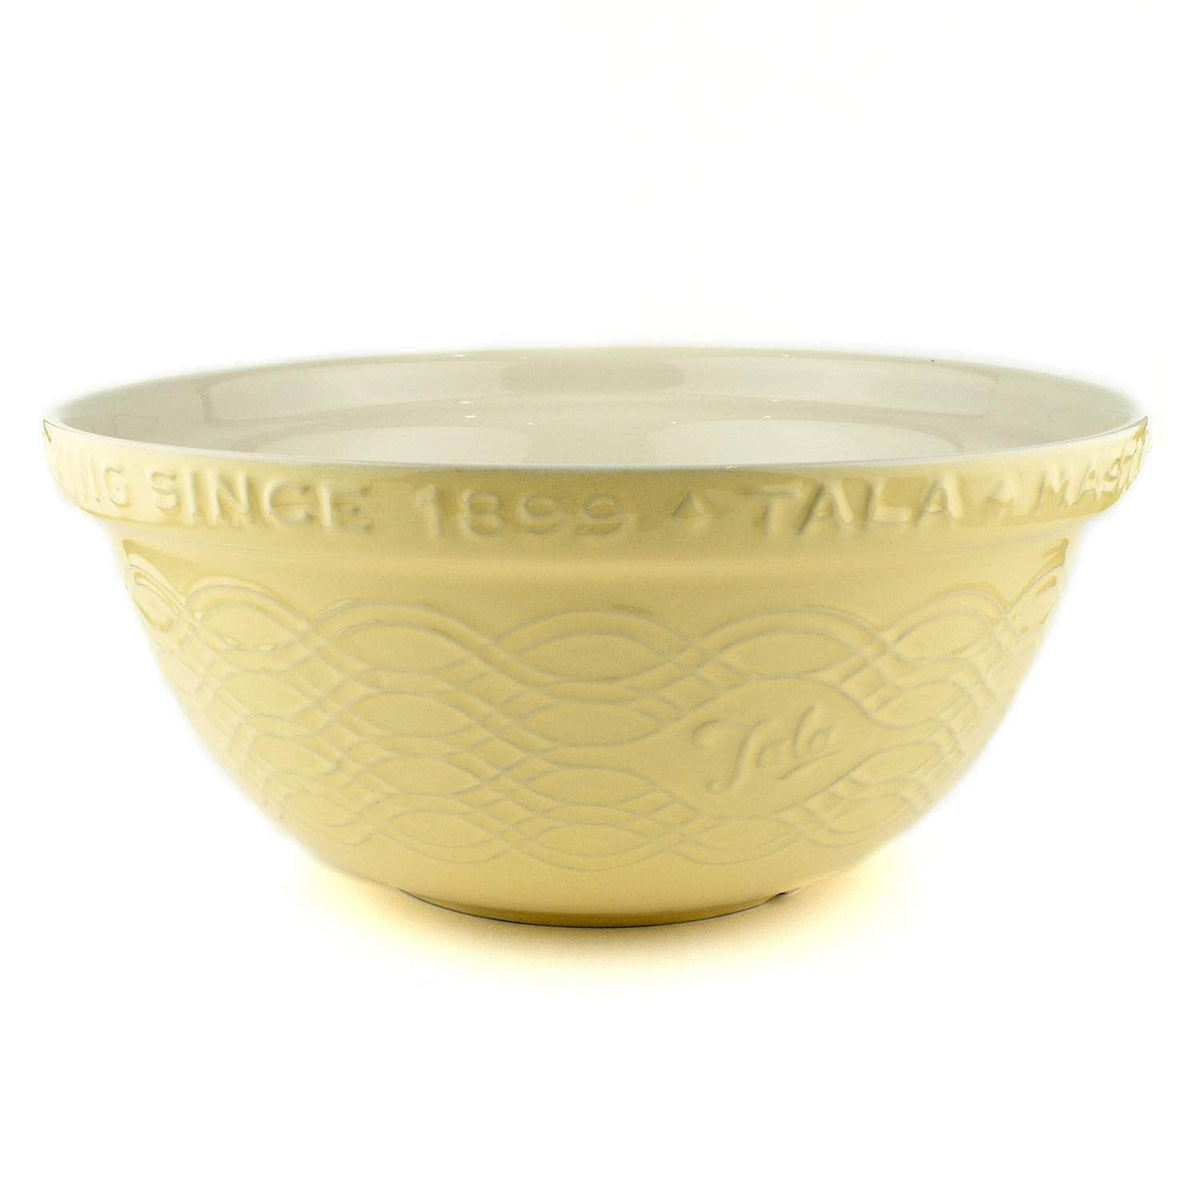 *New* Tala Originals Cream mixing bowl